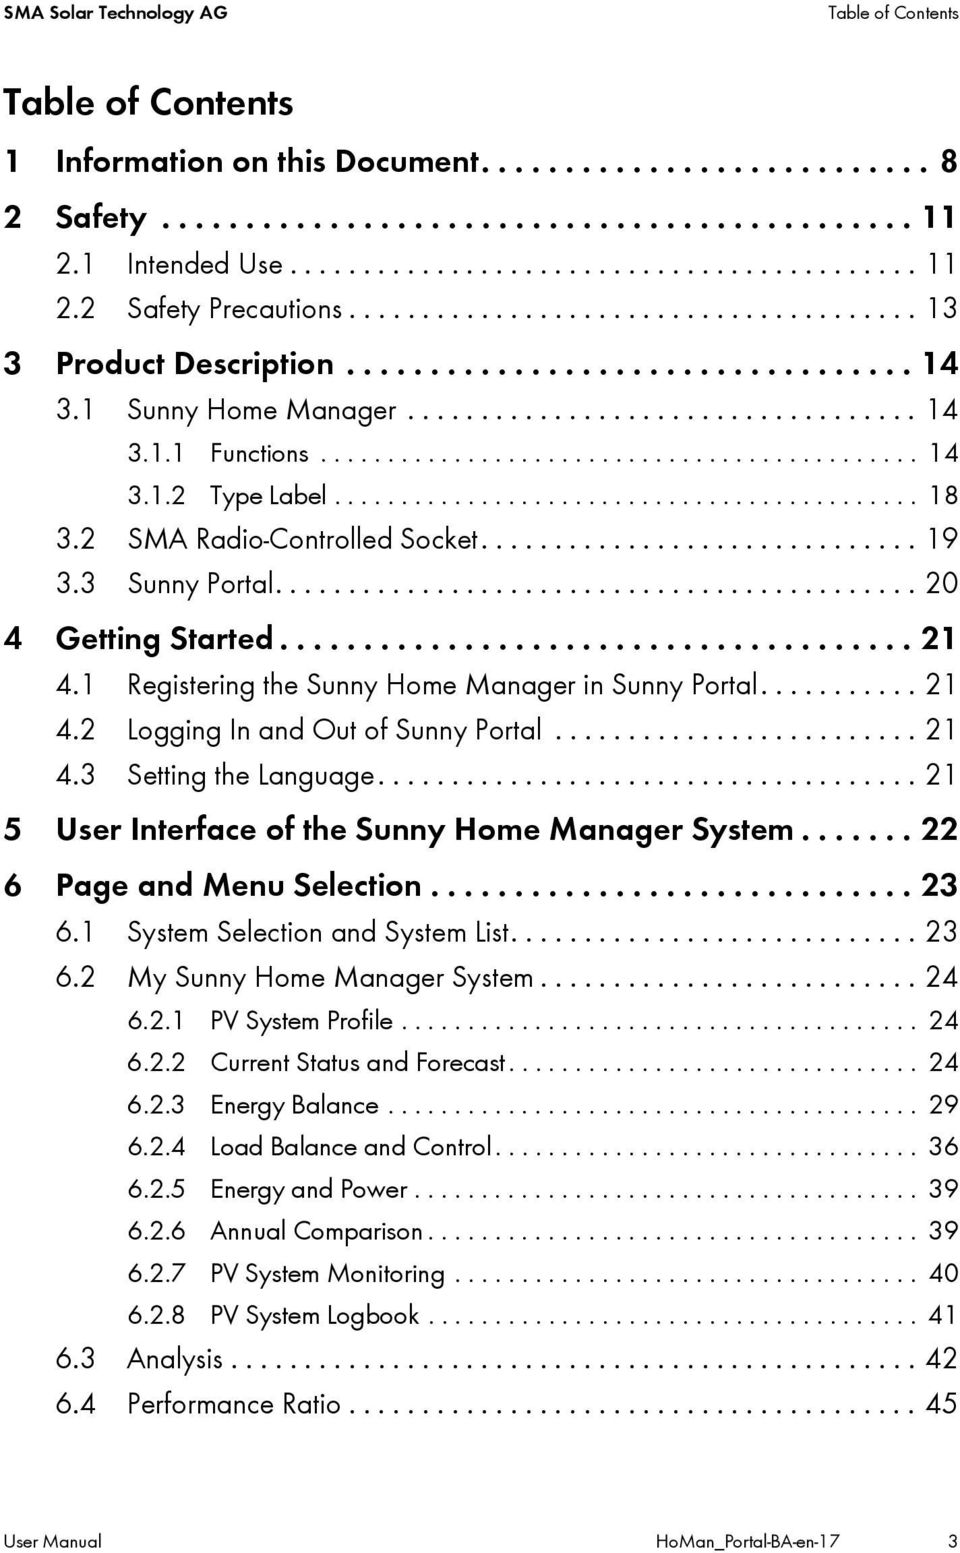 User Manual SUNNY HOME MANAGER in SUNNY PORTAL - PDF